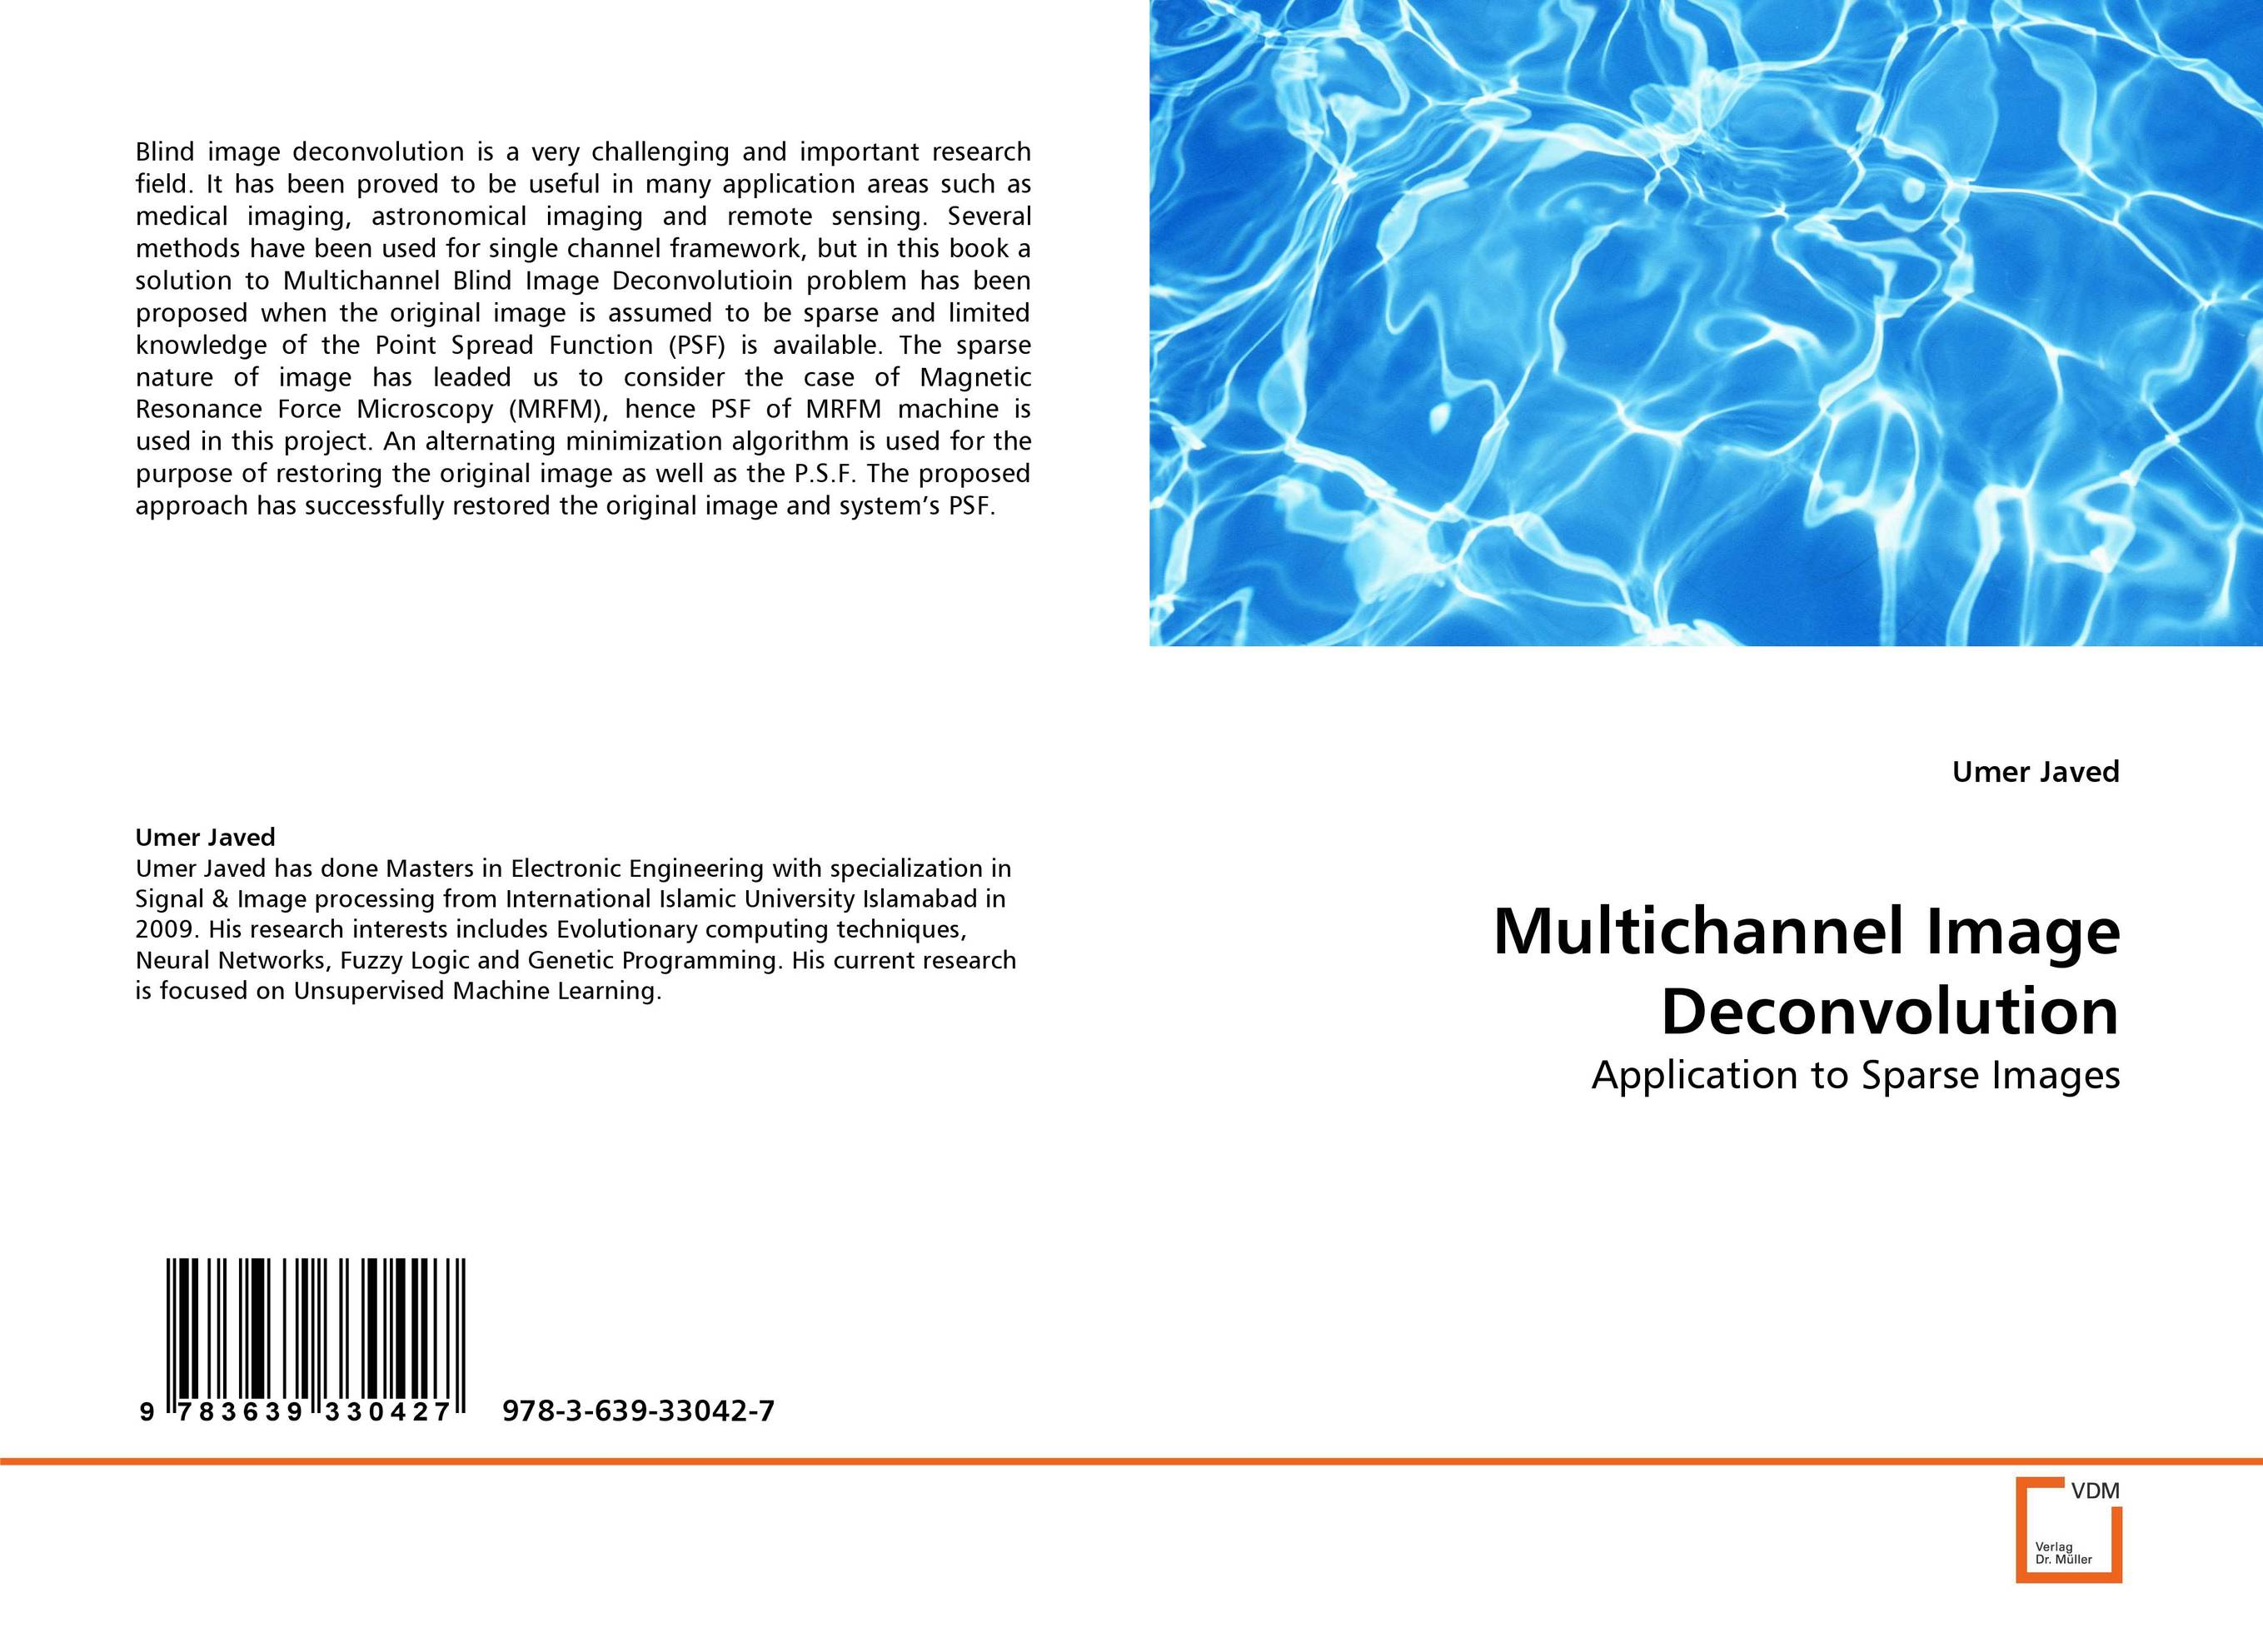 Multichannel Image Deconvolution bayesian deconvolution of sparse processes